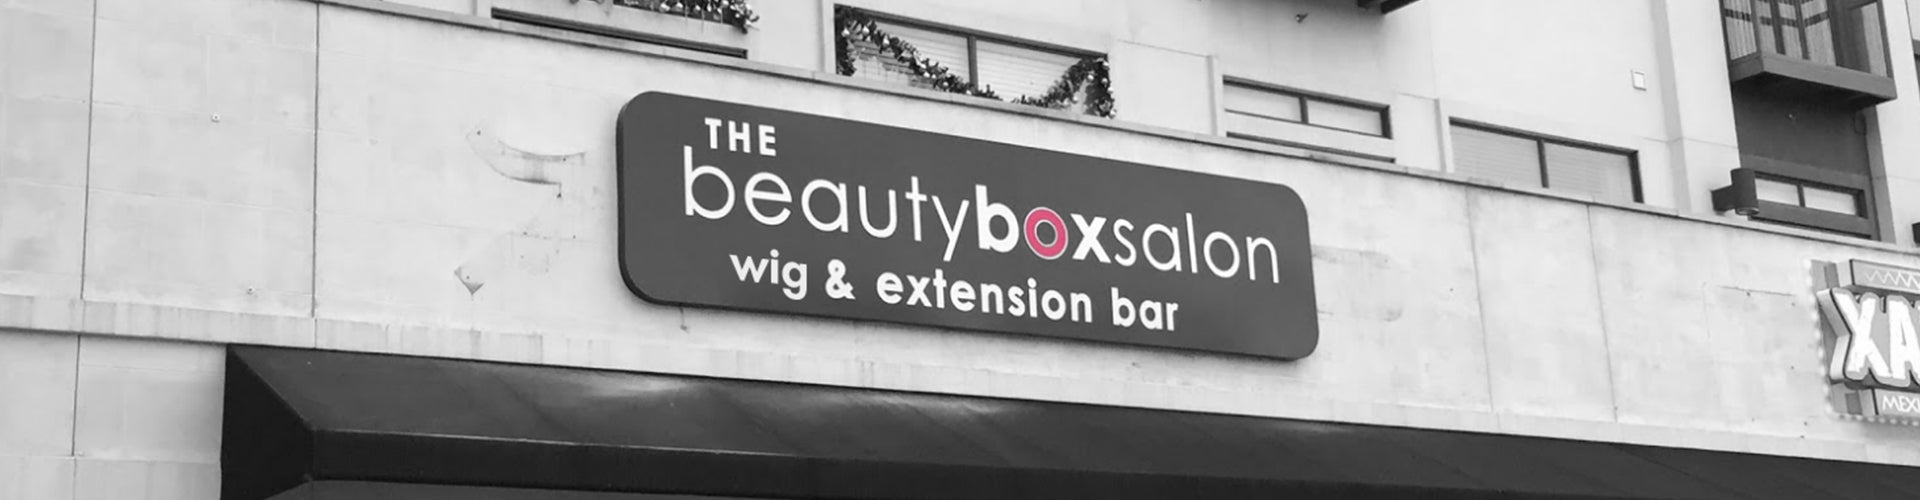 Best Wigs and Hair Extensions | The Beauty Box Salon in Dallas, TX